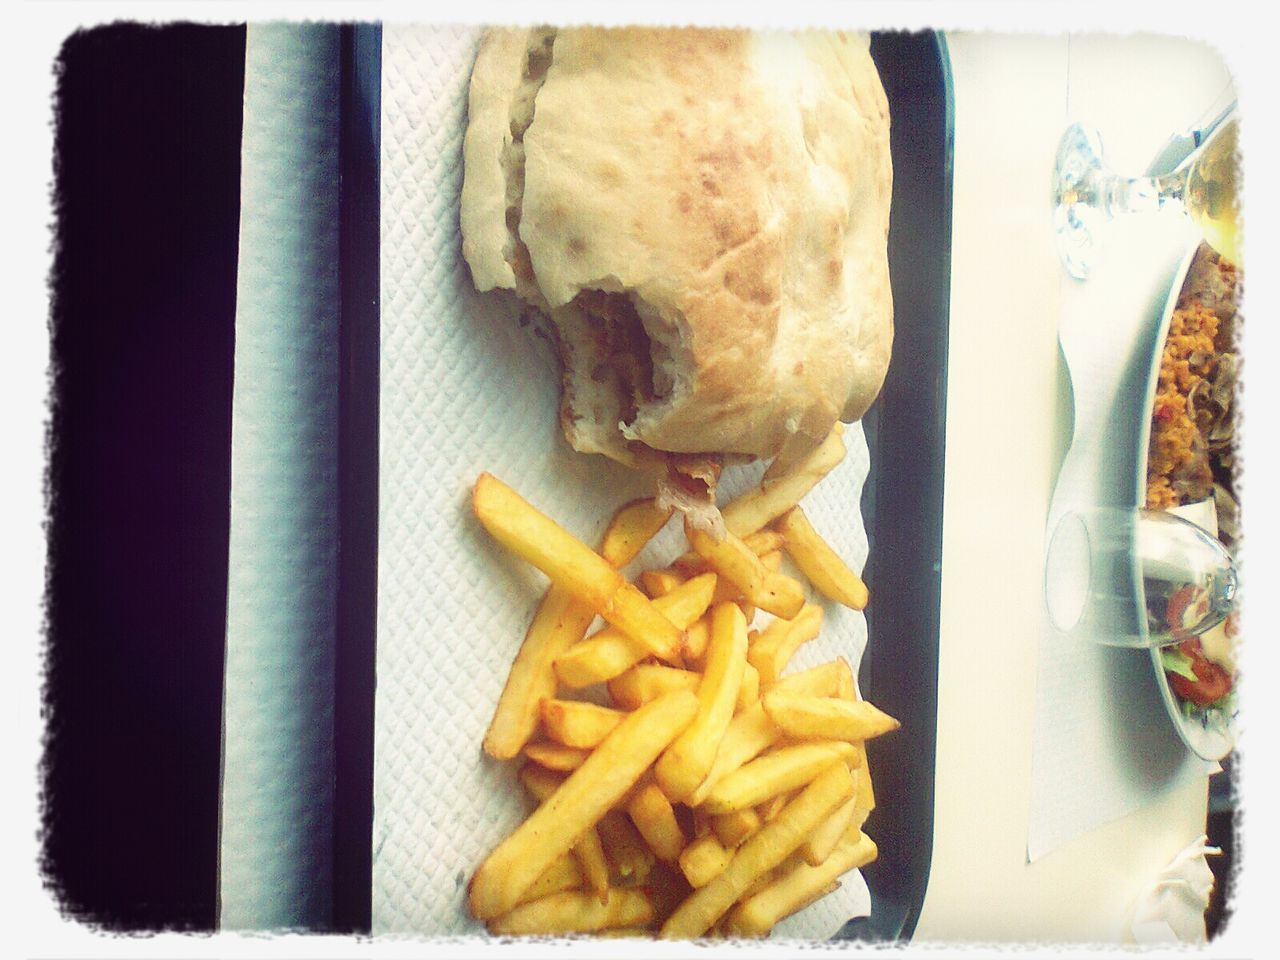 food and drink, food, french fries, prepared potato, freshness, no people, close-up, indoors, ready-to-eat, day